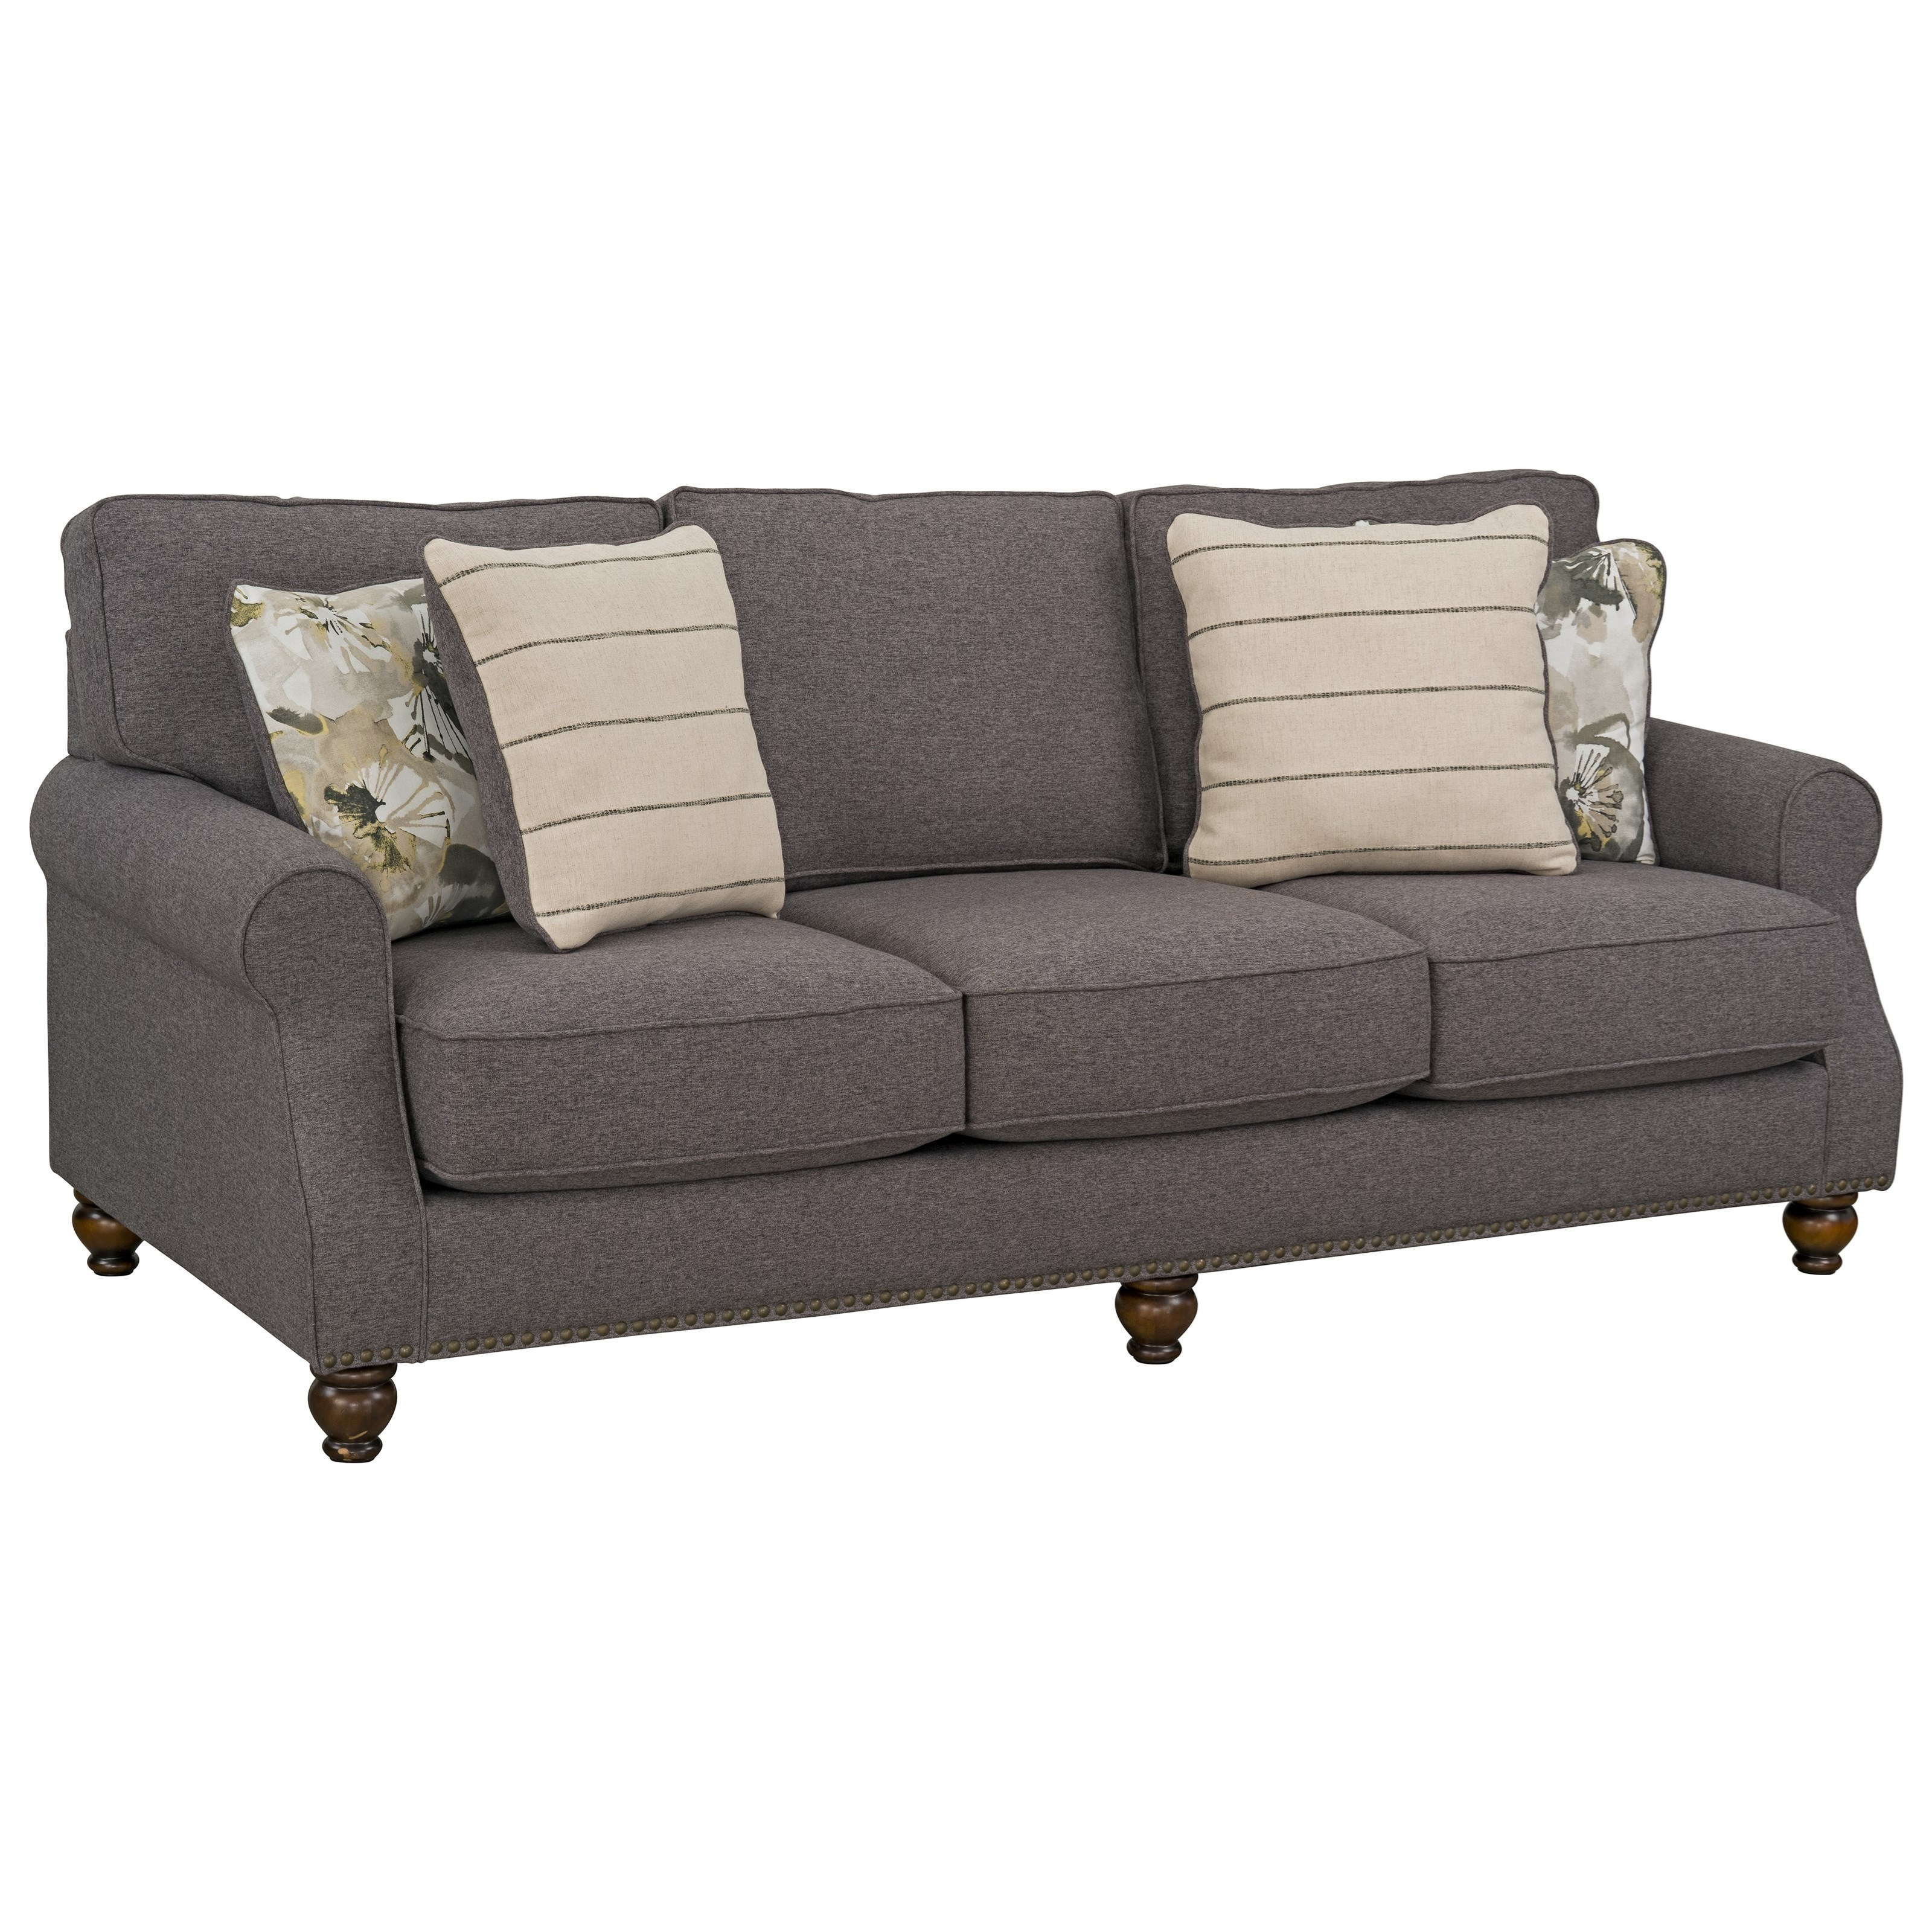 Angelina Sofa by Standard Furniture at Beds N Stuff